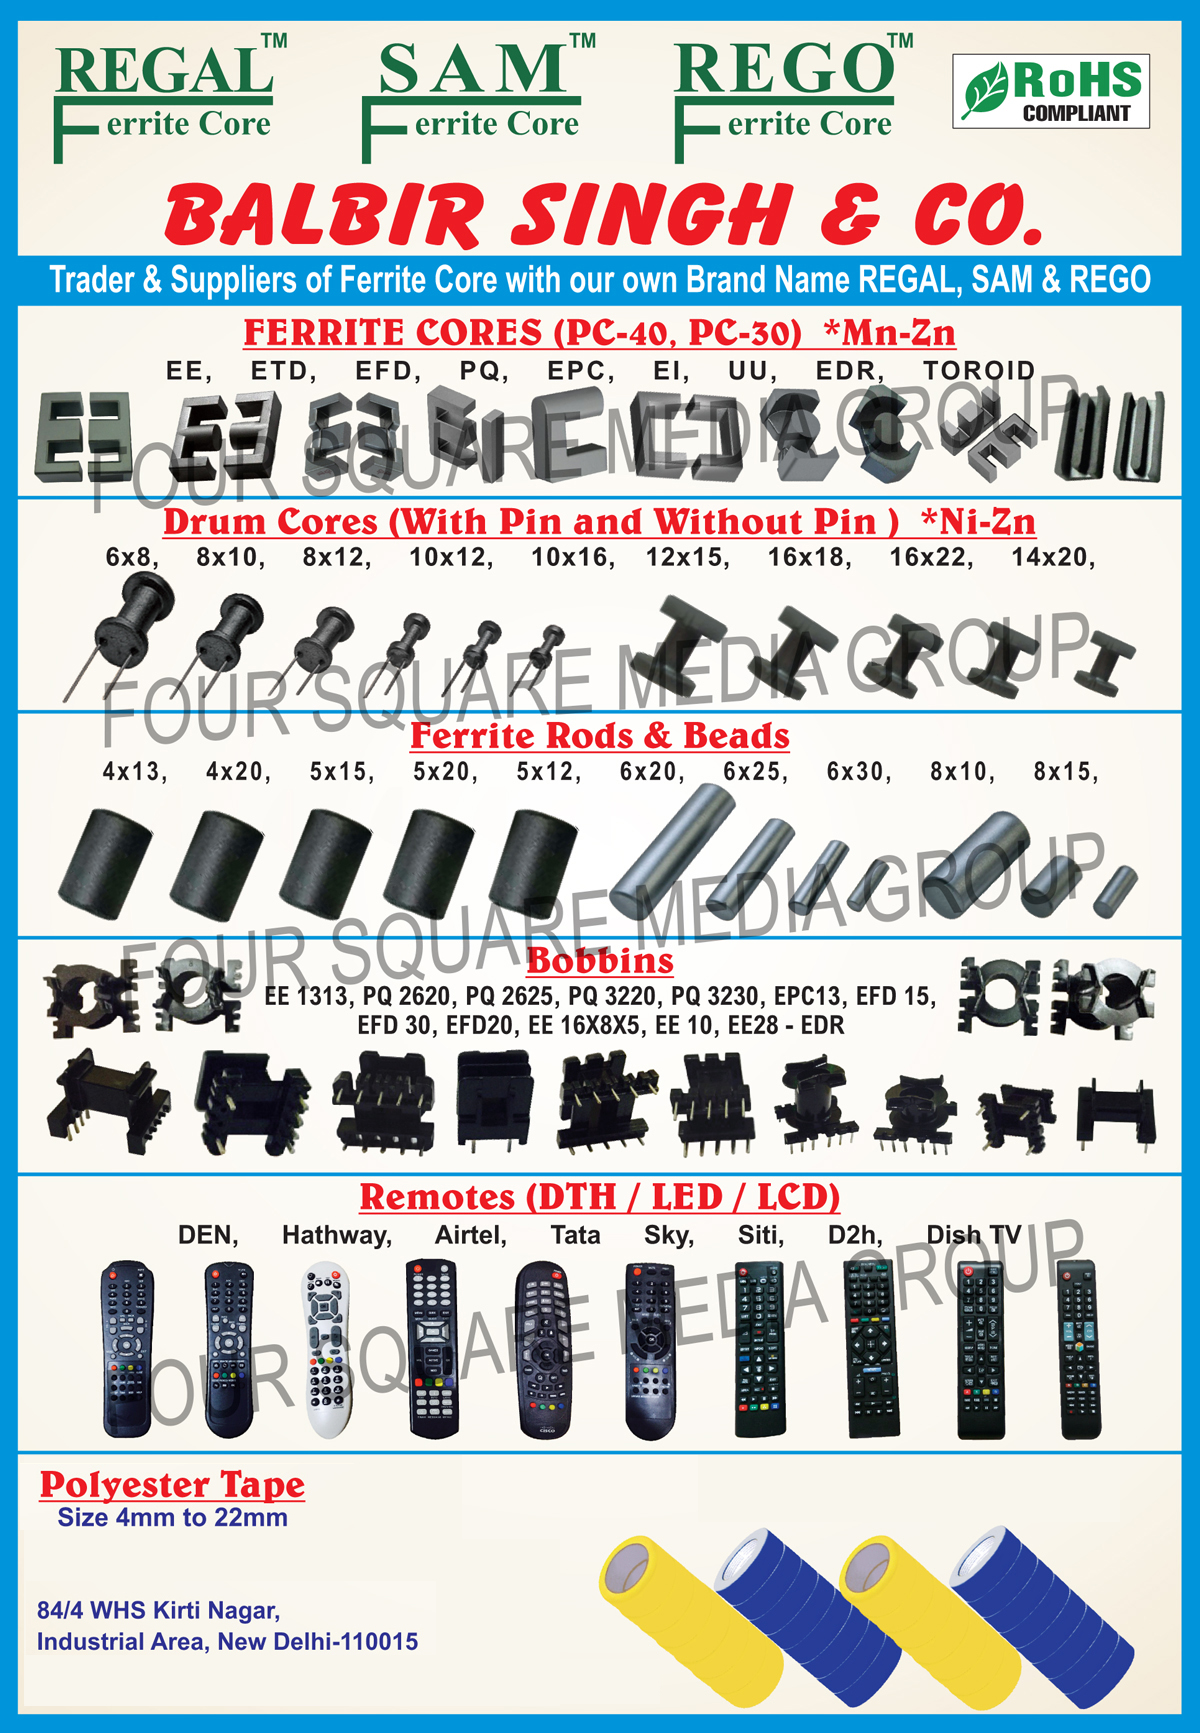 Drum Core Ferrites, Ferrite Core, Toroidal Ferrite Core, EE Core Ferrites, EE Core Ferrites, El Core Ferrites, ETD Core Ferrites, PQ Core Ferrites, EFD Core Ferrites, Rod Core Ferrites, EDR Core Ferrites, Toroidal Core Ferrites, UU Core Ferrites, Ferrite Rods, Ferrite Beads, DTH Remotes, LED Remotes, LCD Remotes, Polyester Tapes, Bobbins